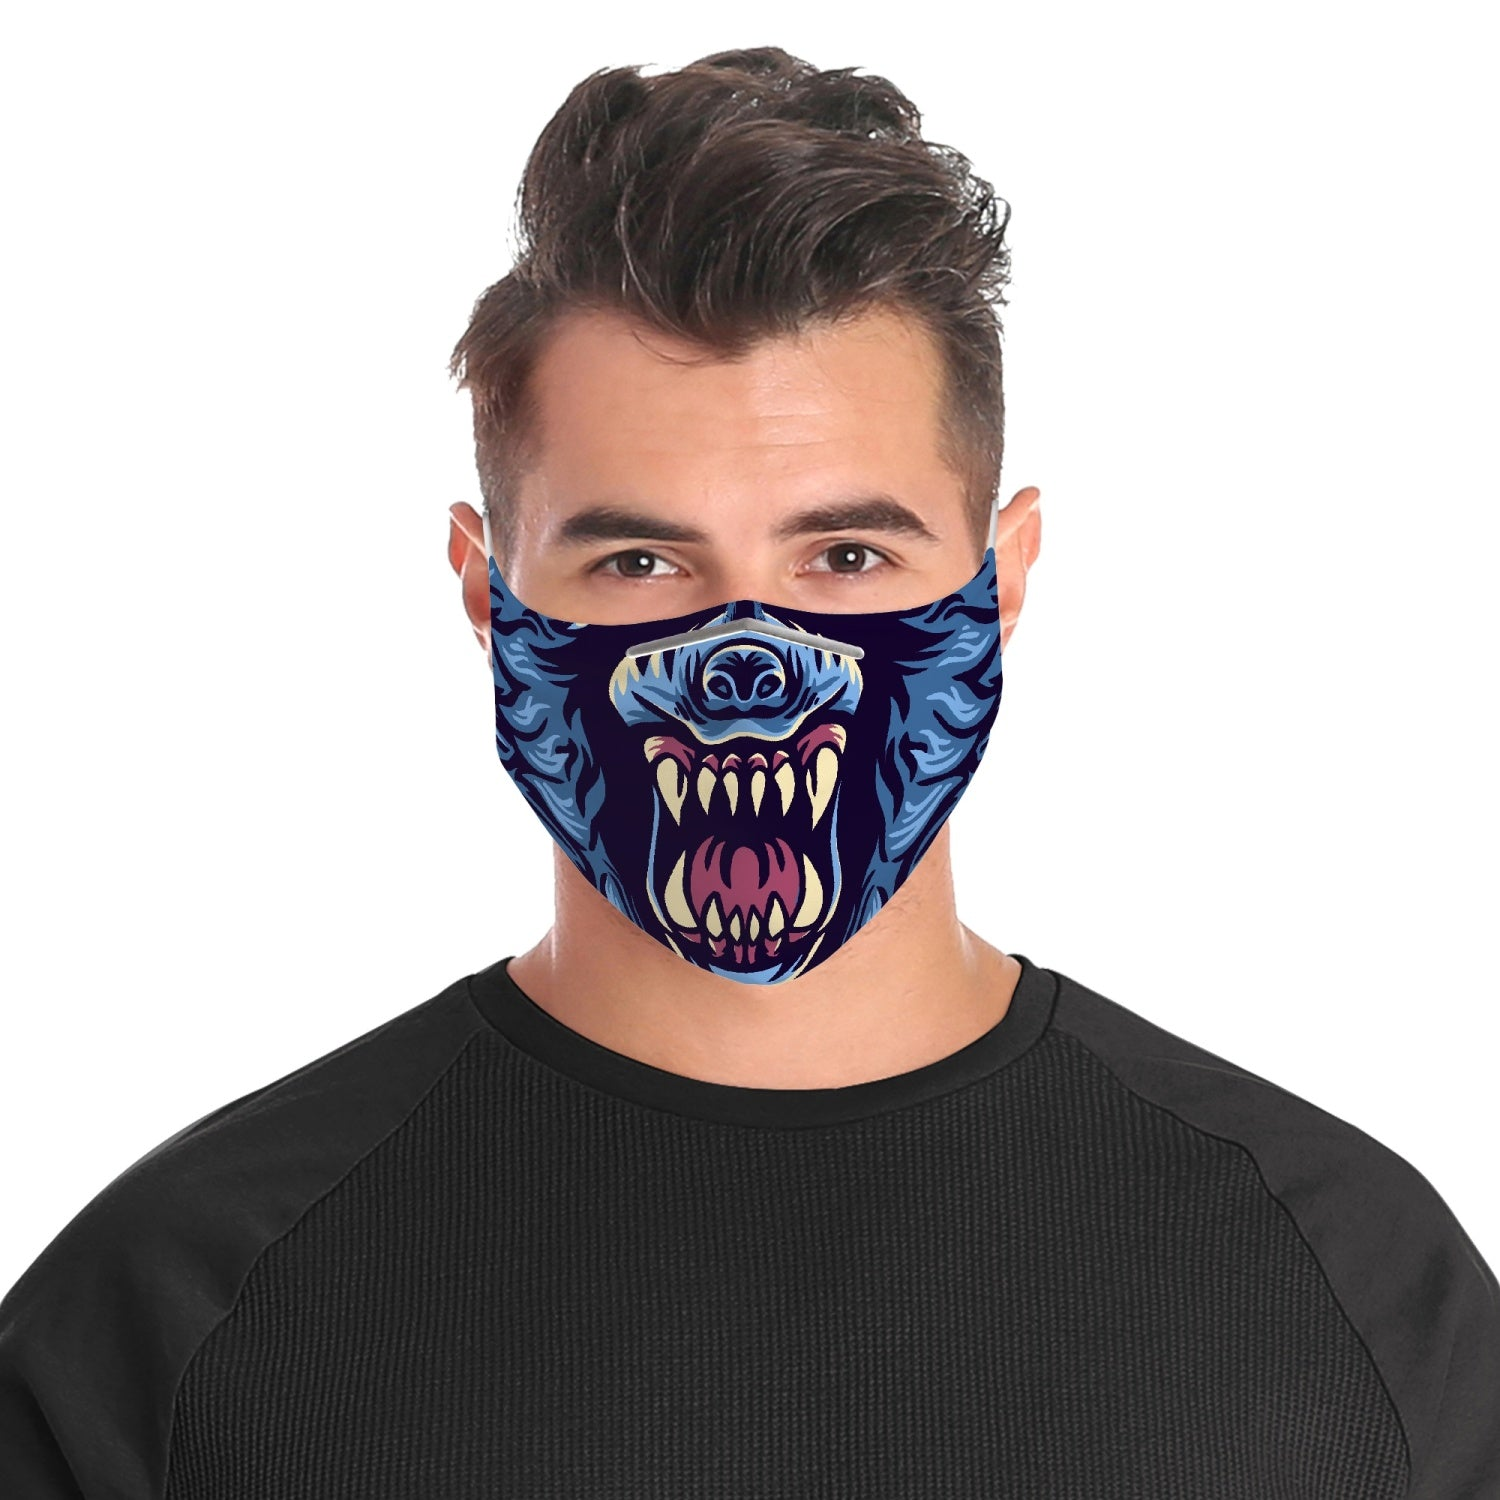 Exclusive Blue Roaring Wolf Face Mask